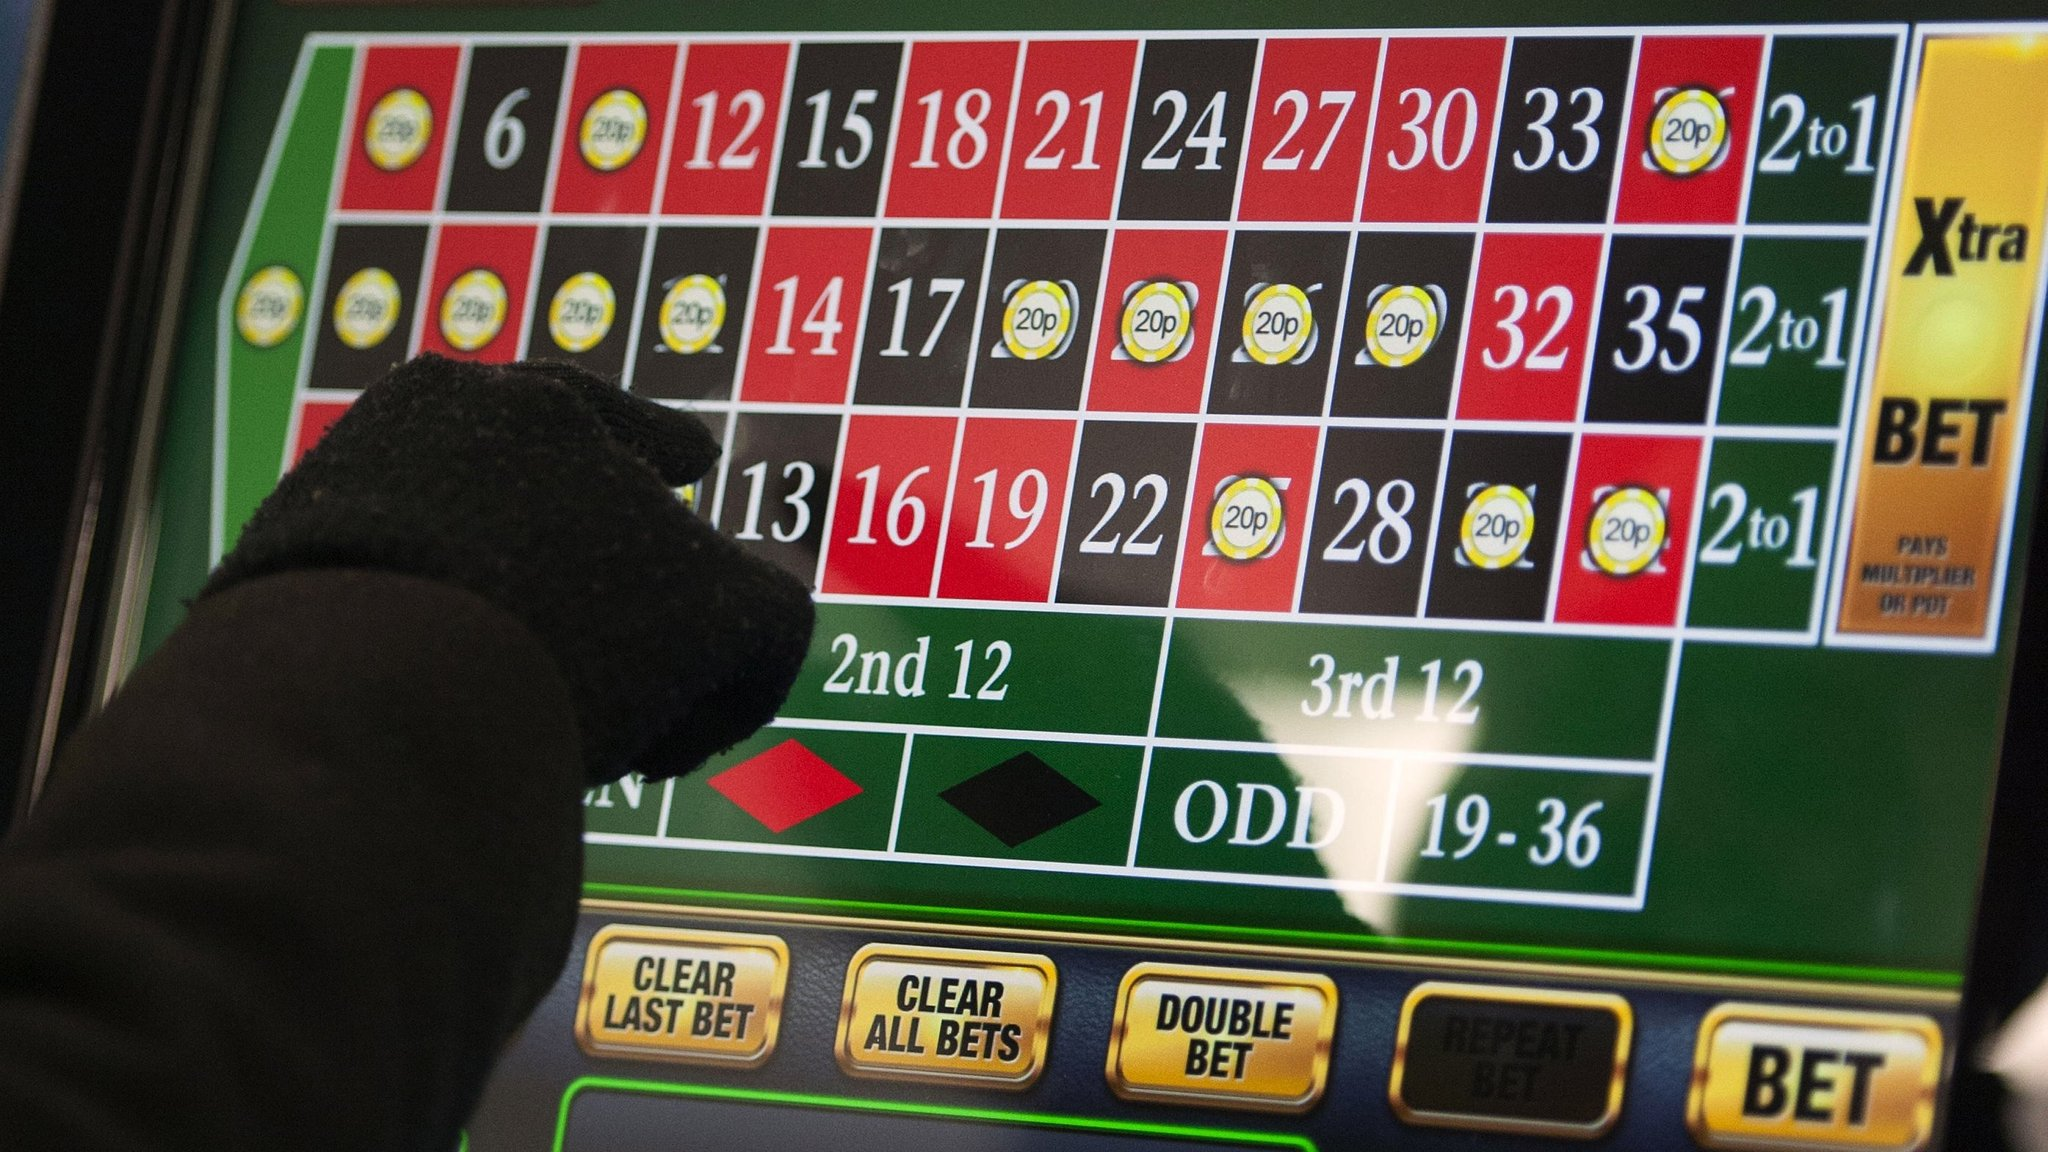 Number's up for William Hill's big money spinner | Financial Times